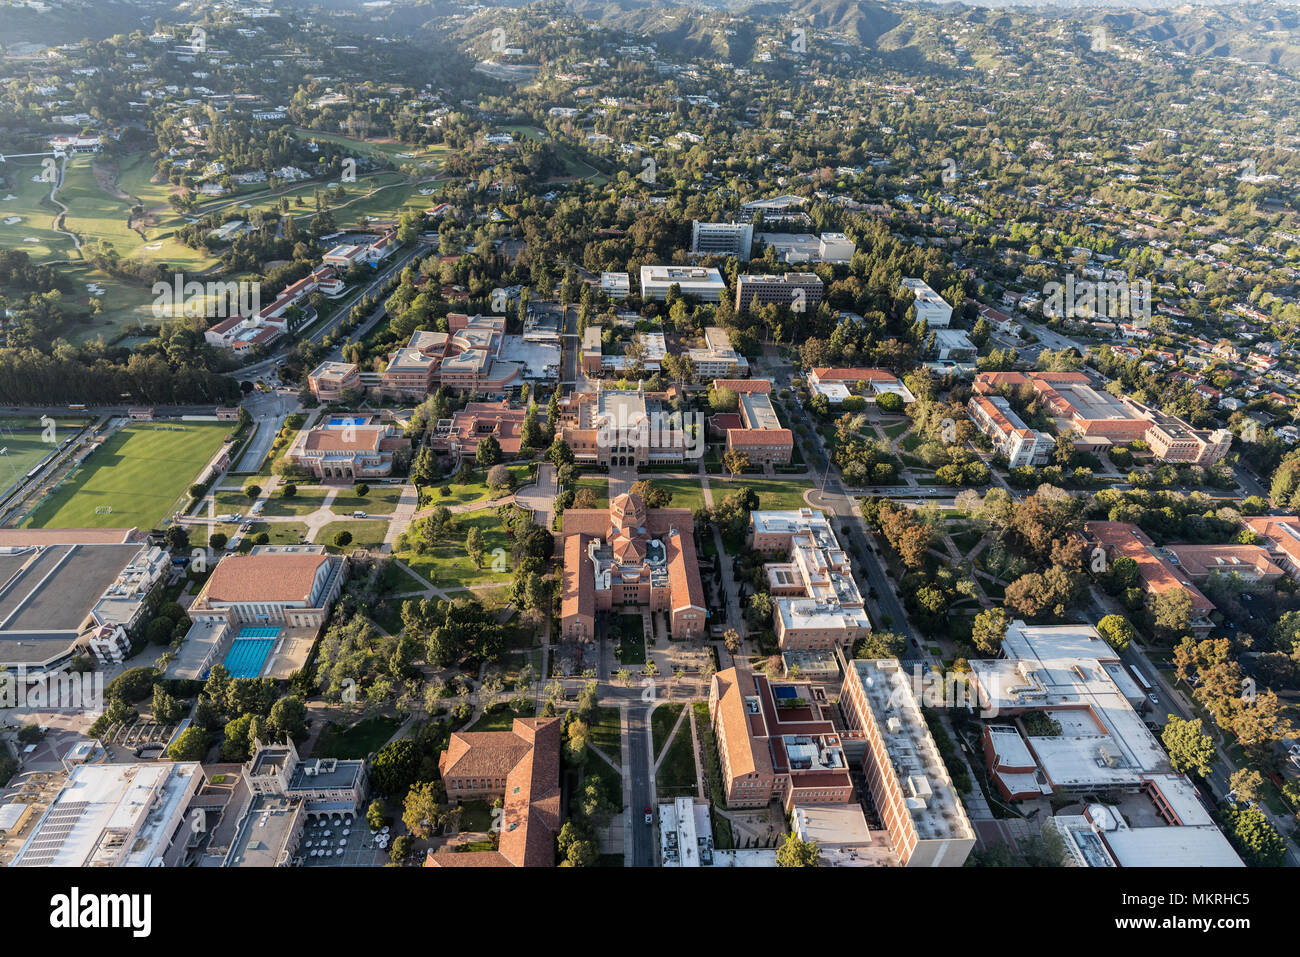 Los Angeles, California, USA - April 18, 2018:  Aerial view of UCLA campus and Westwood. - Stock Image